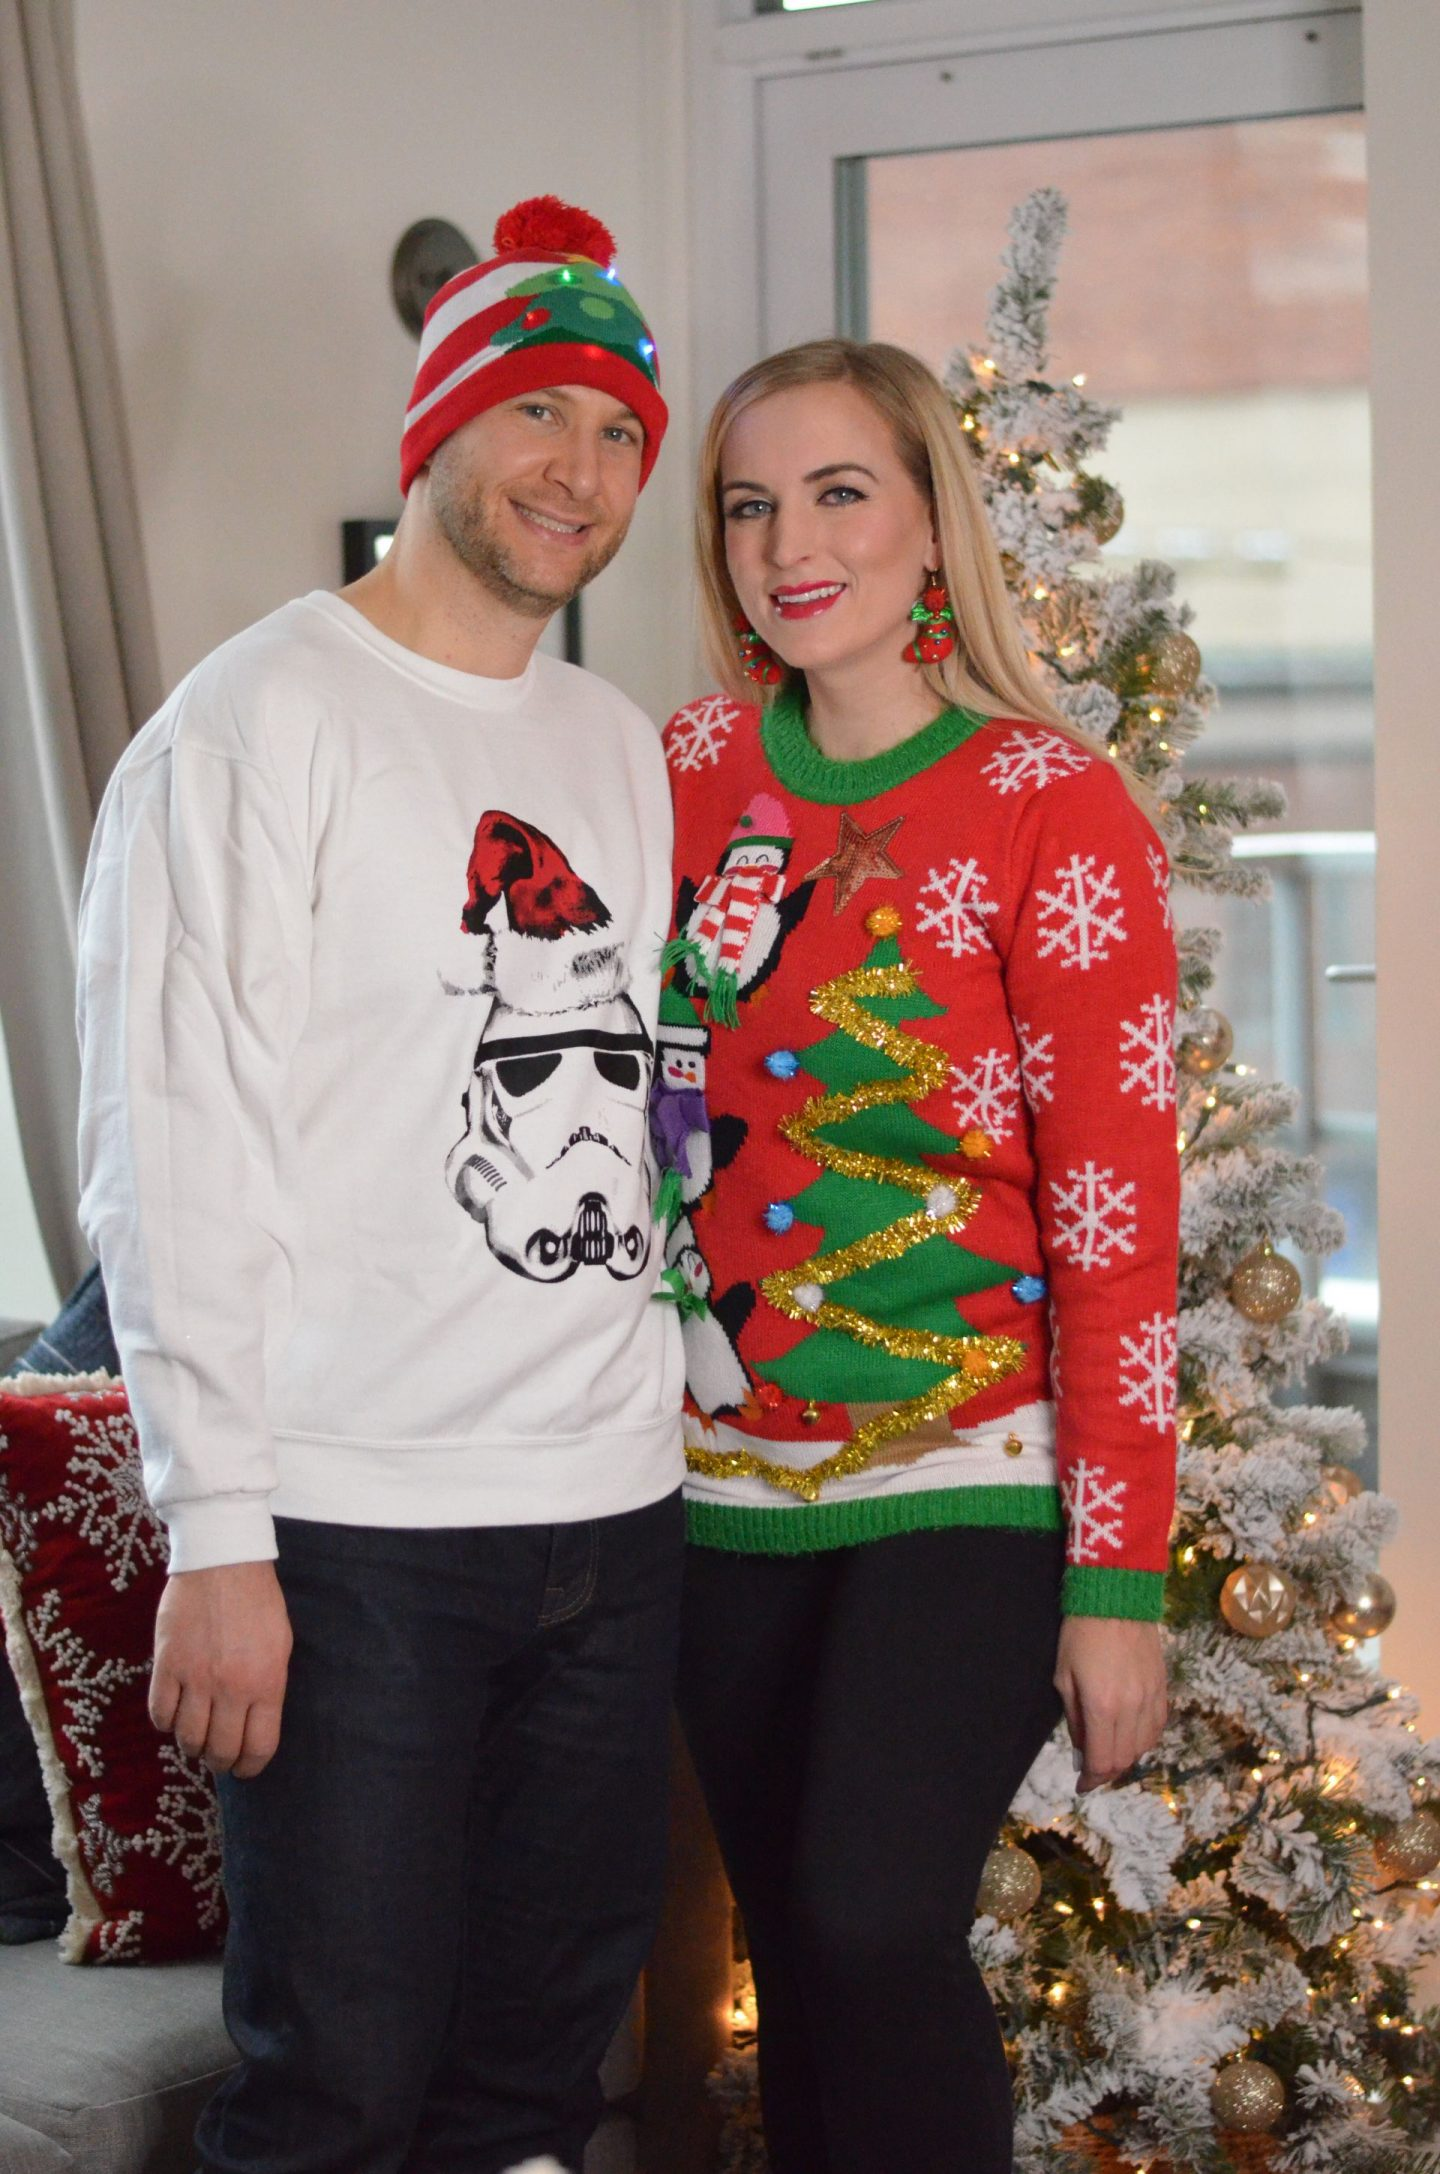 man and woman standing wearing ugly christmas sweaters for an ugly christmas sweater party